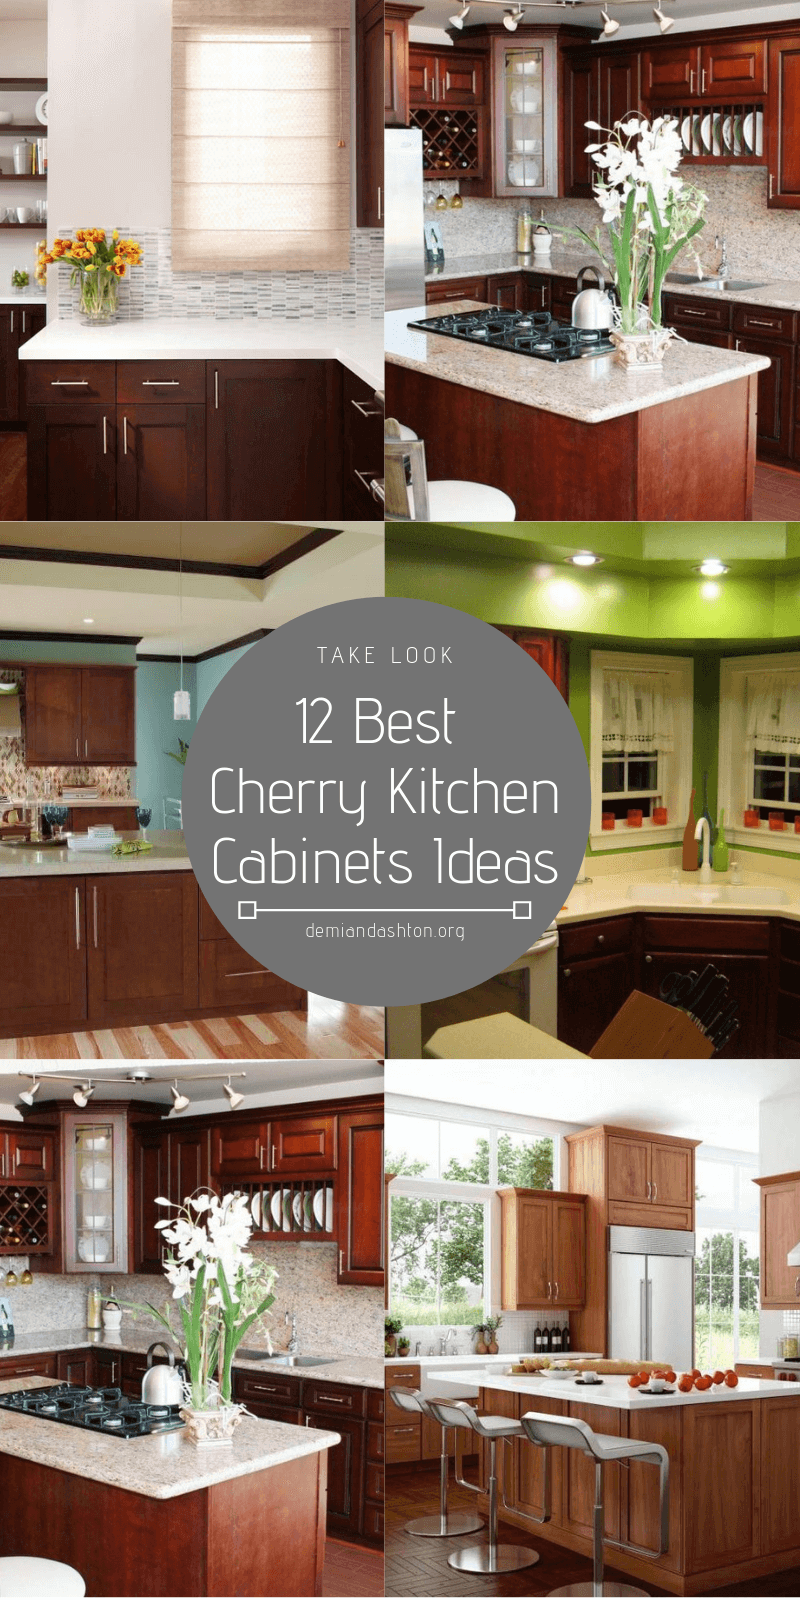 Cherry Kitchen Cabinets For Sale Are Beautiful And Ideally Suited For Those Looking For A Warm An Cherry Cabinets Kitchen Kitchen Cabinet Styles Cherry Kitchen